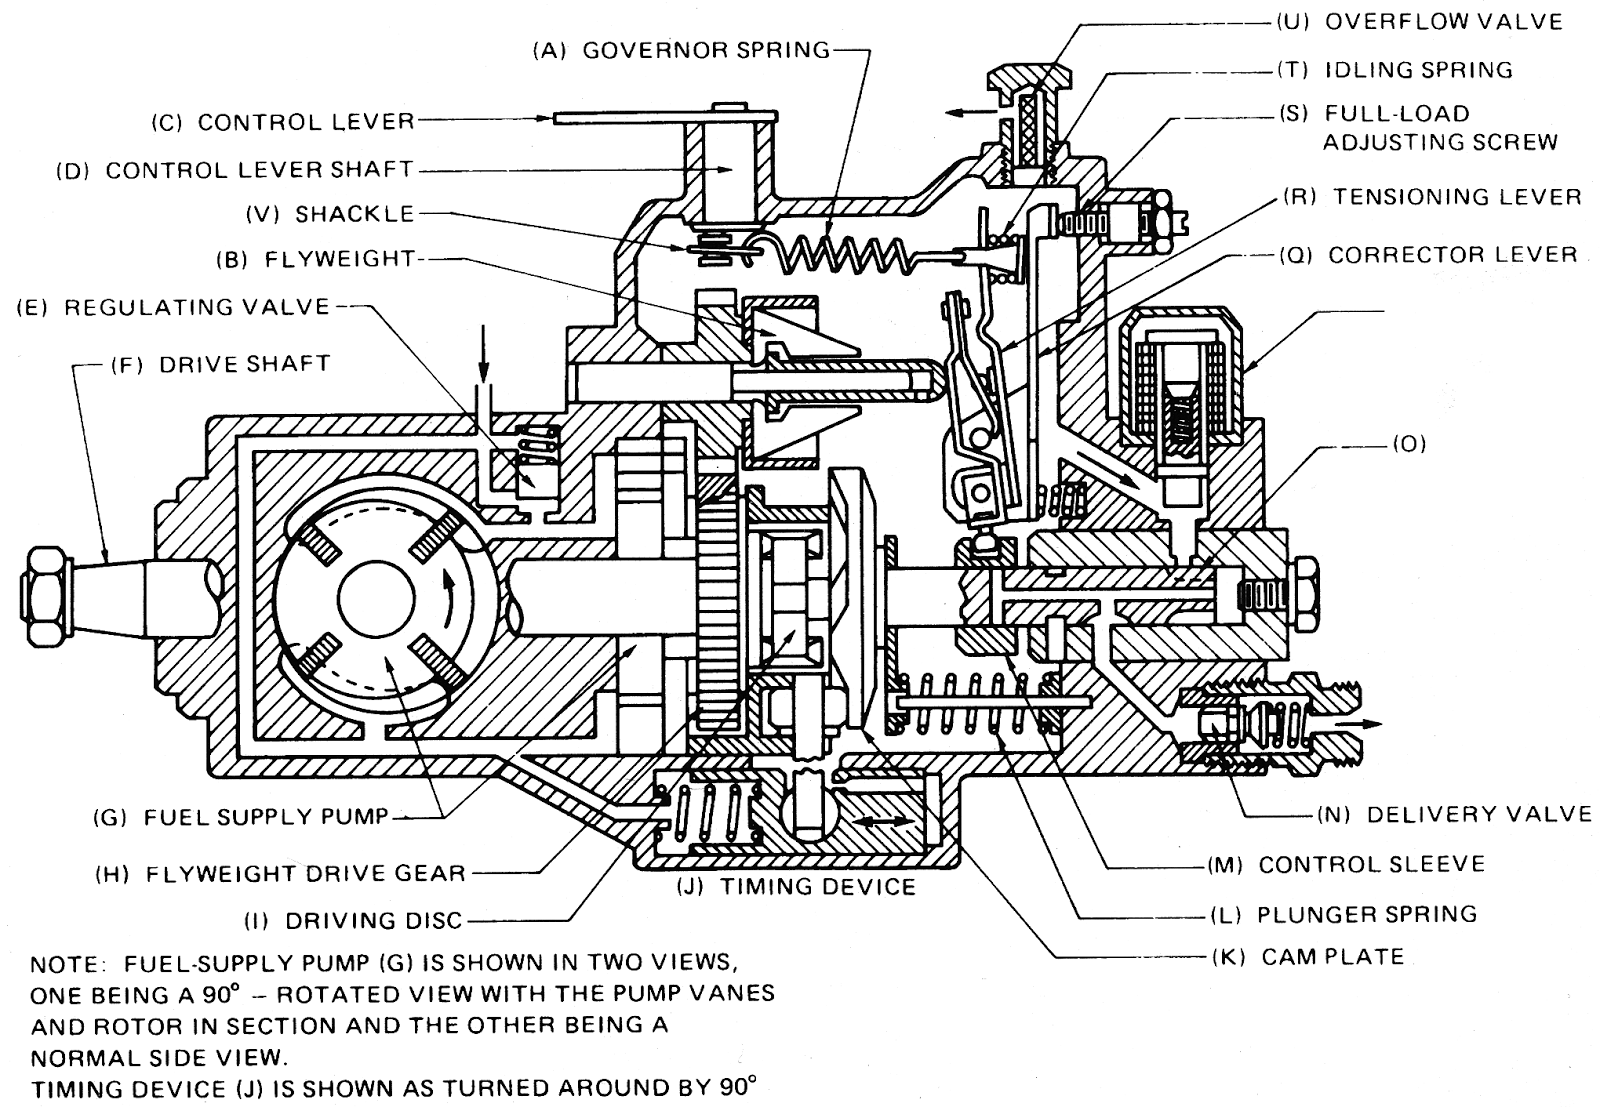 delphi injection pump parts within diagram wiring and